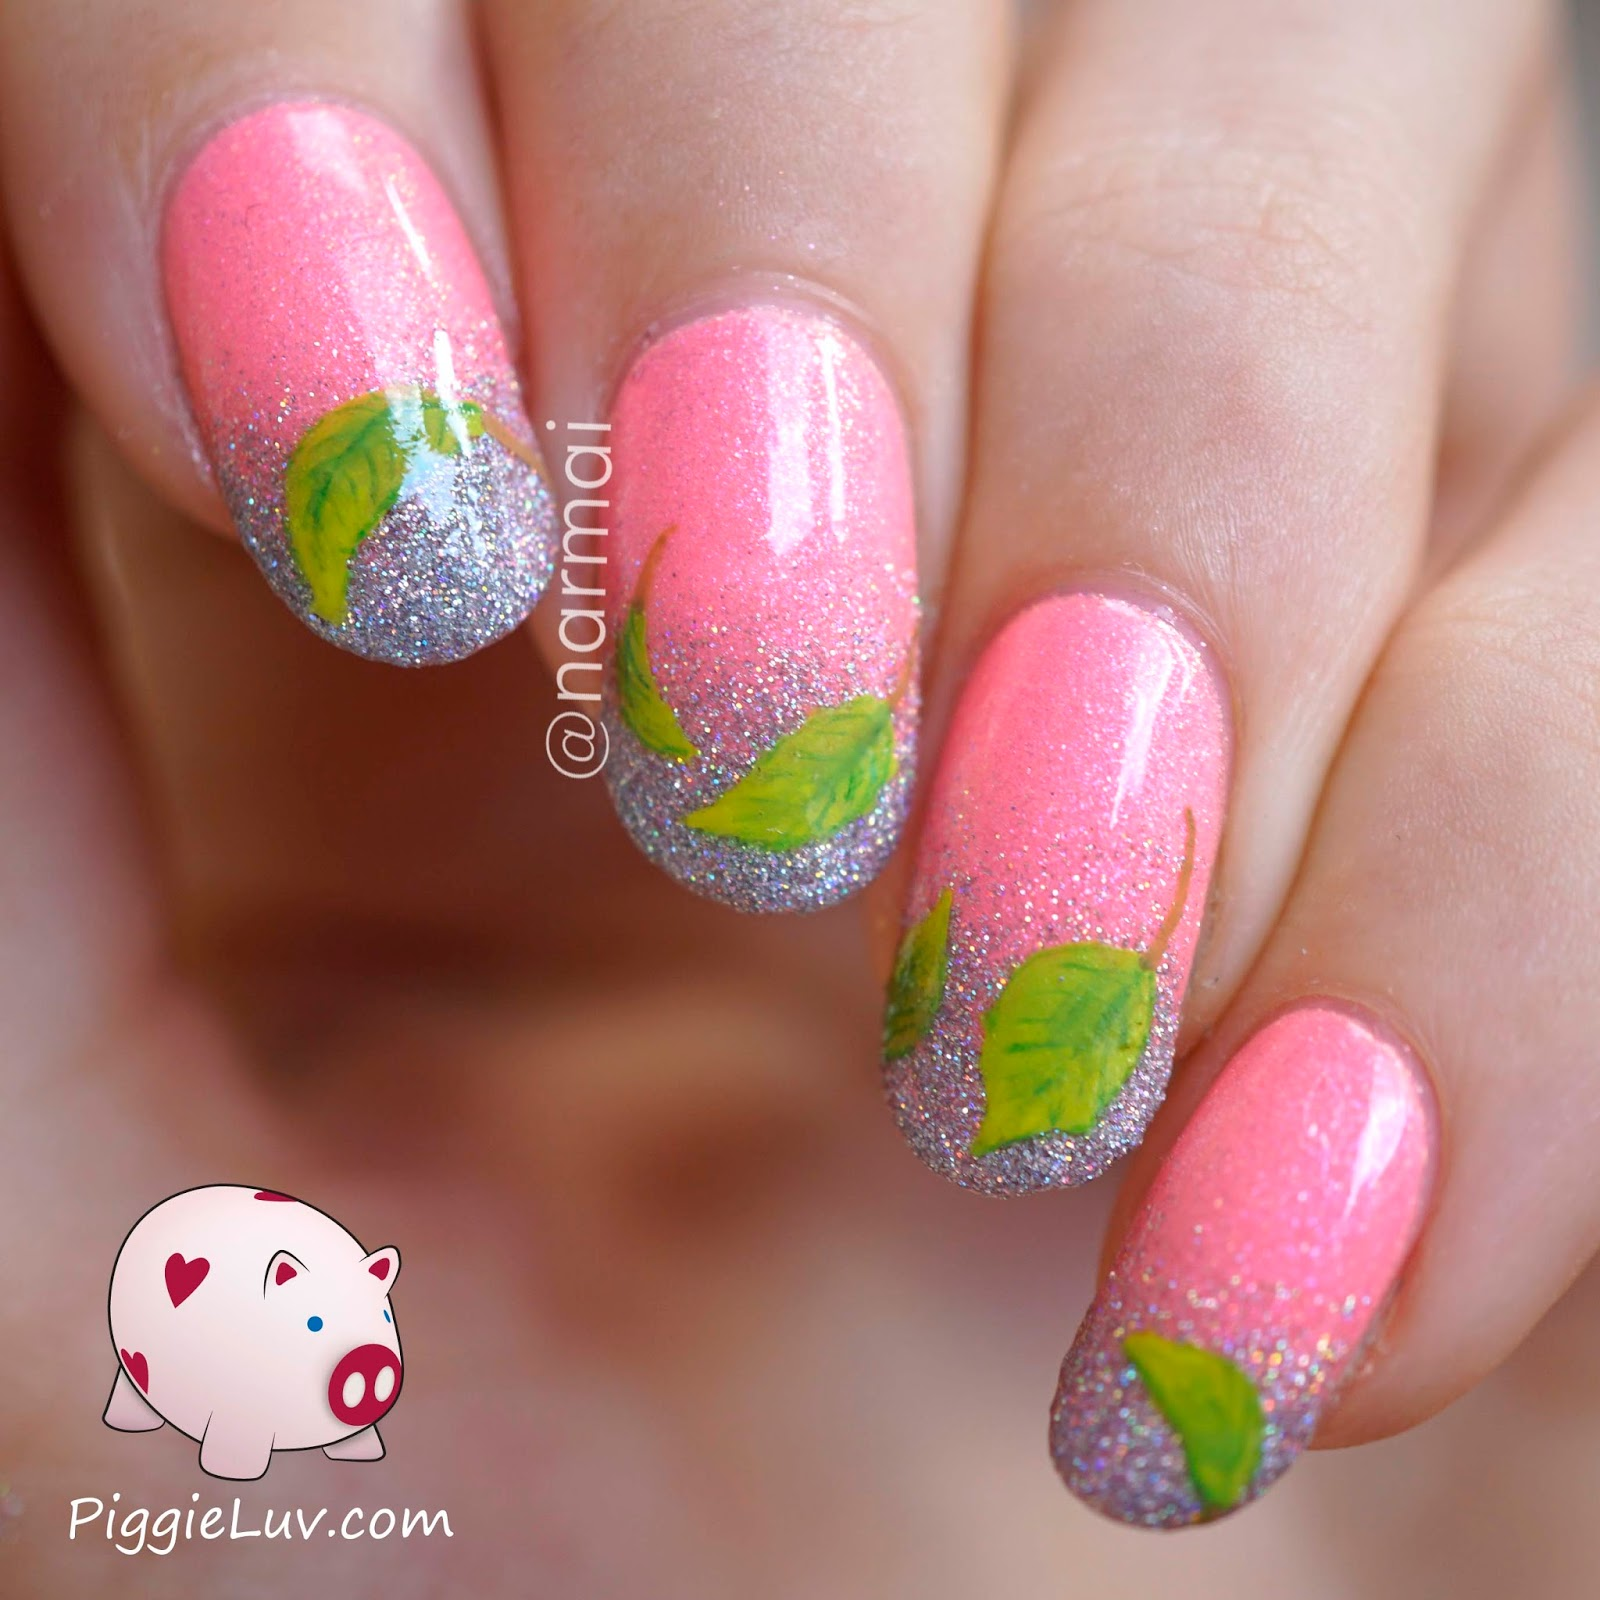 Spring Nail Art: PiggieLuv: Freehand Spring Leaves Nail Art